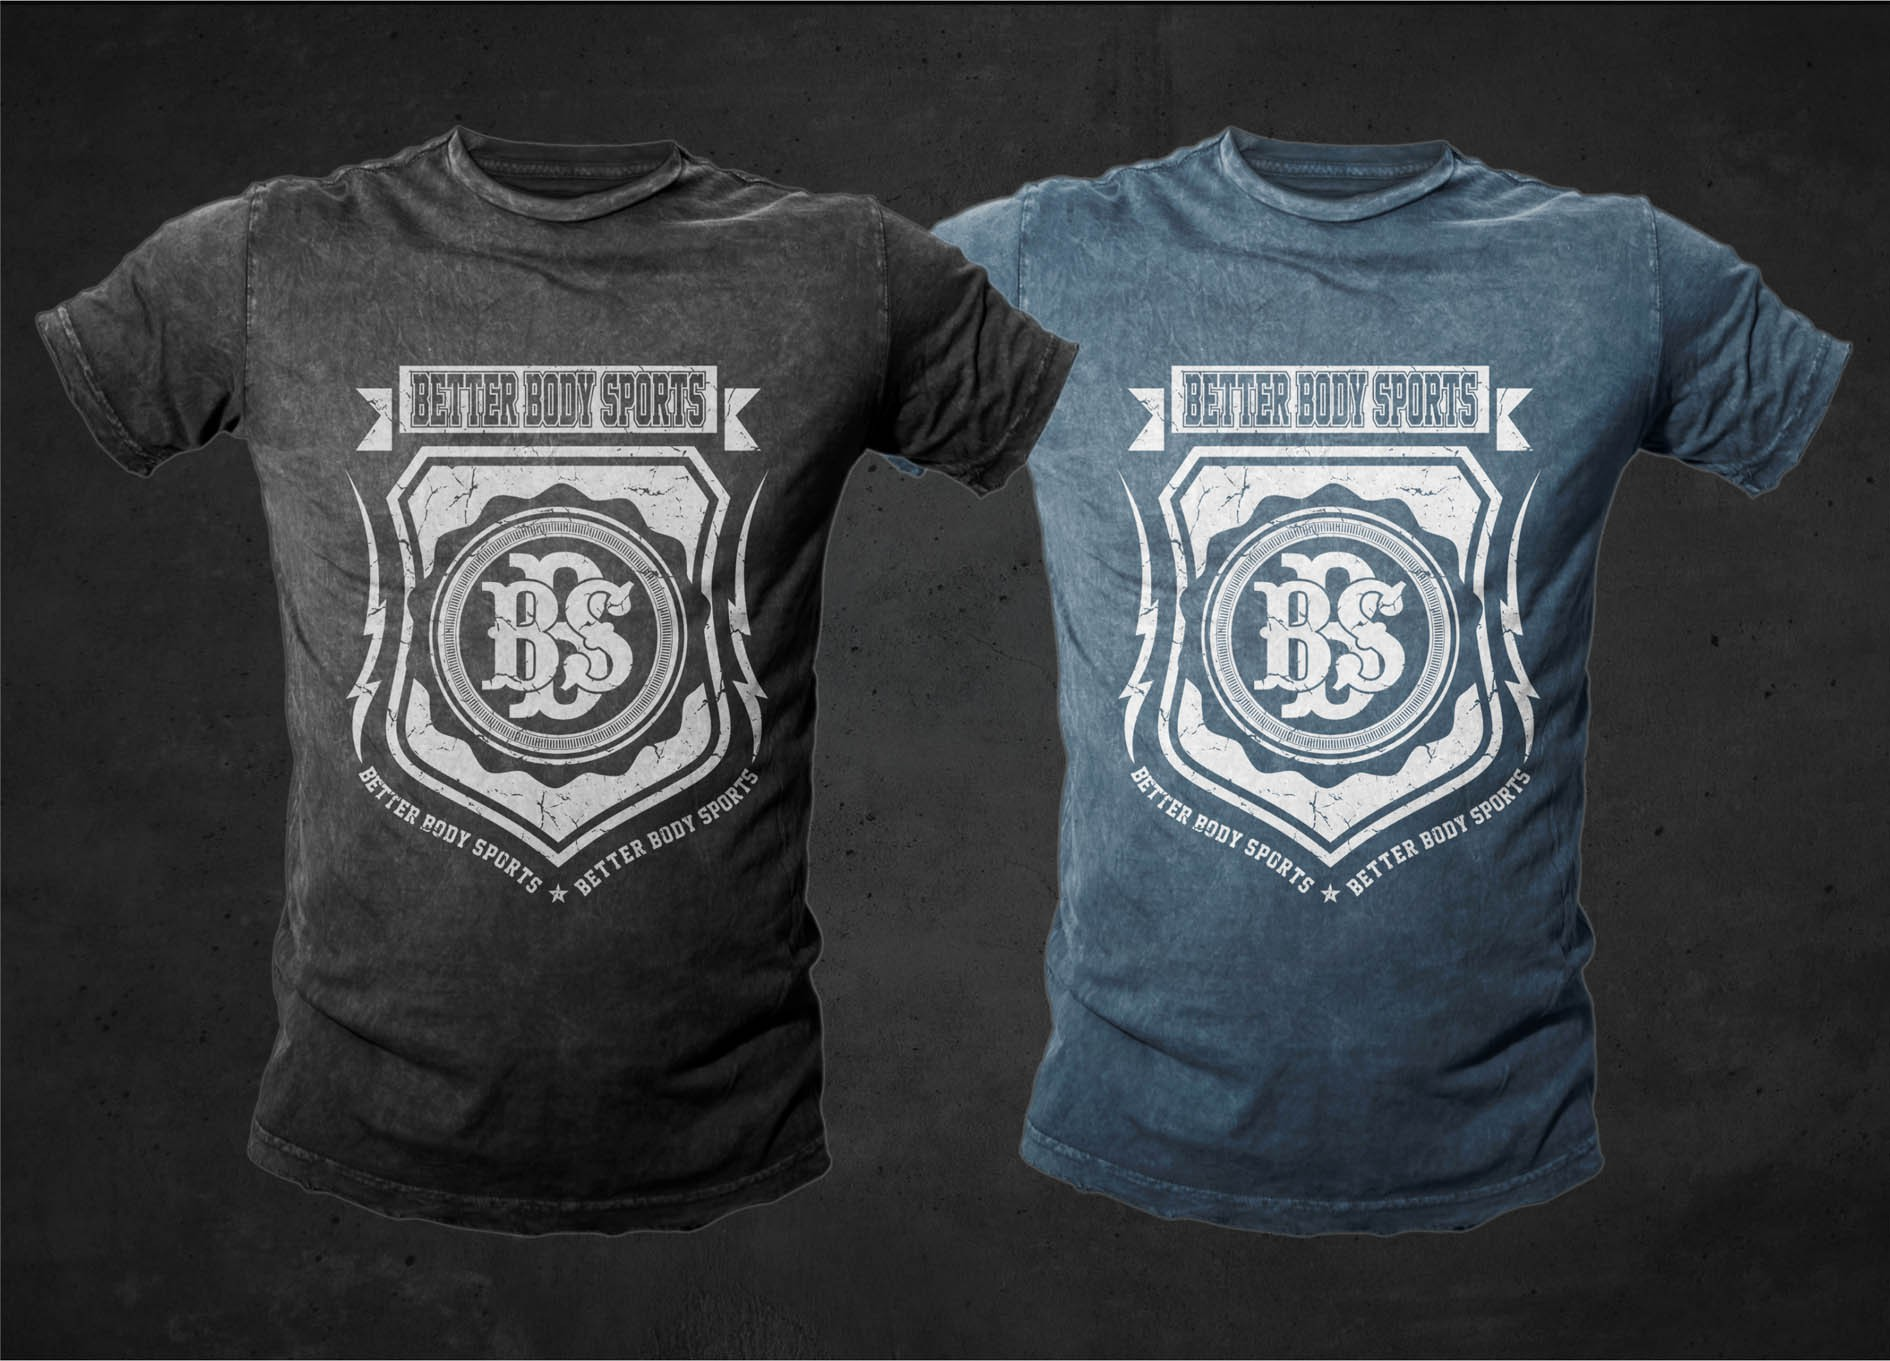 T-Shirt Designs for Sports & Fitness Company